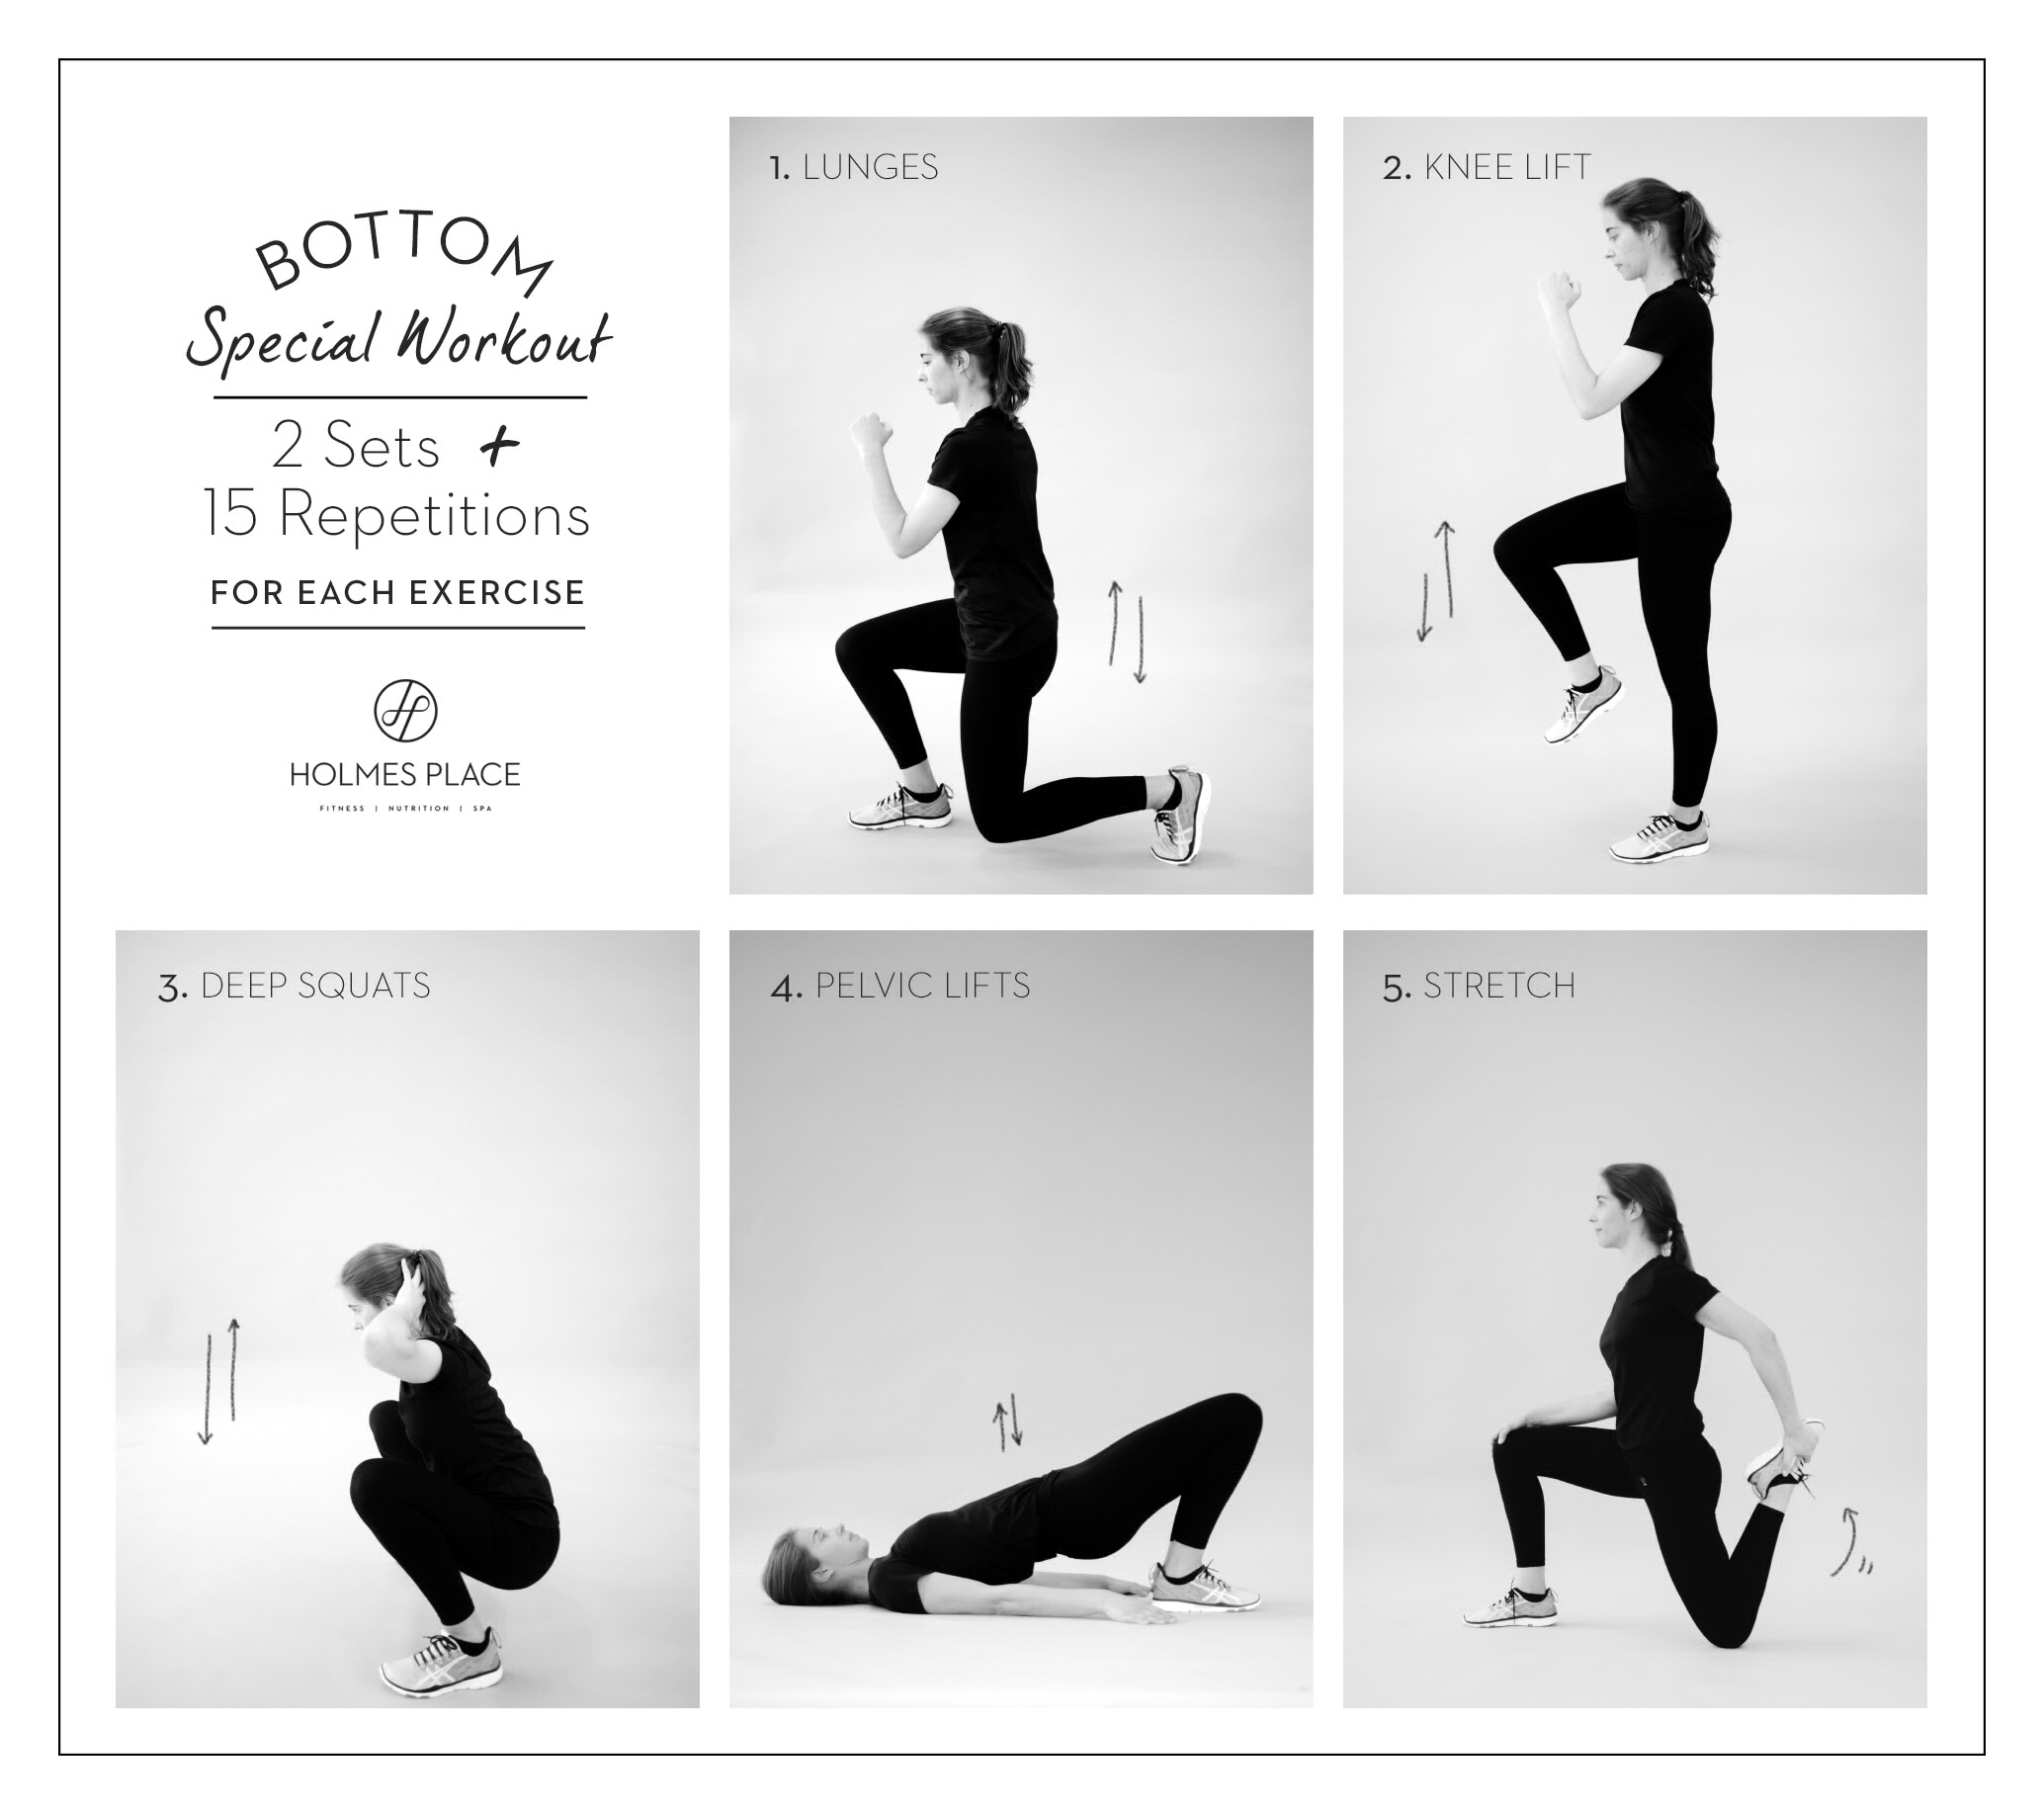 workout layout bottom | Holmes Place